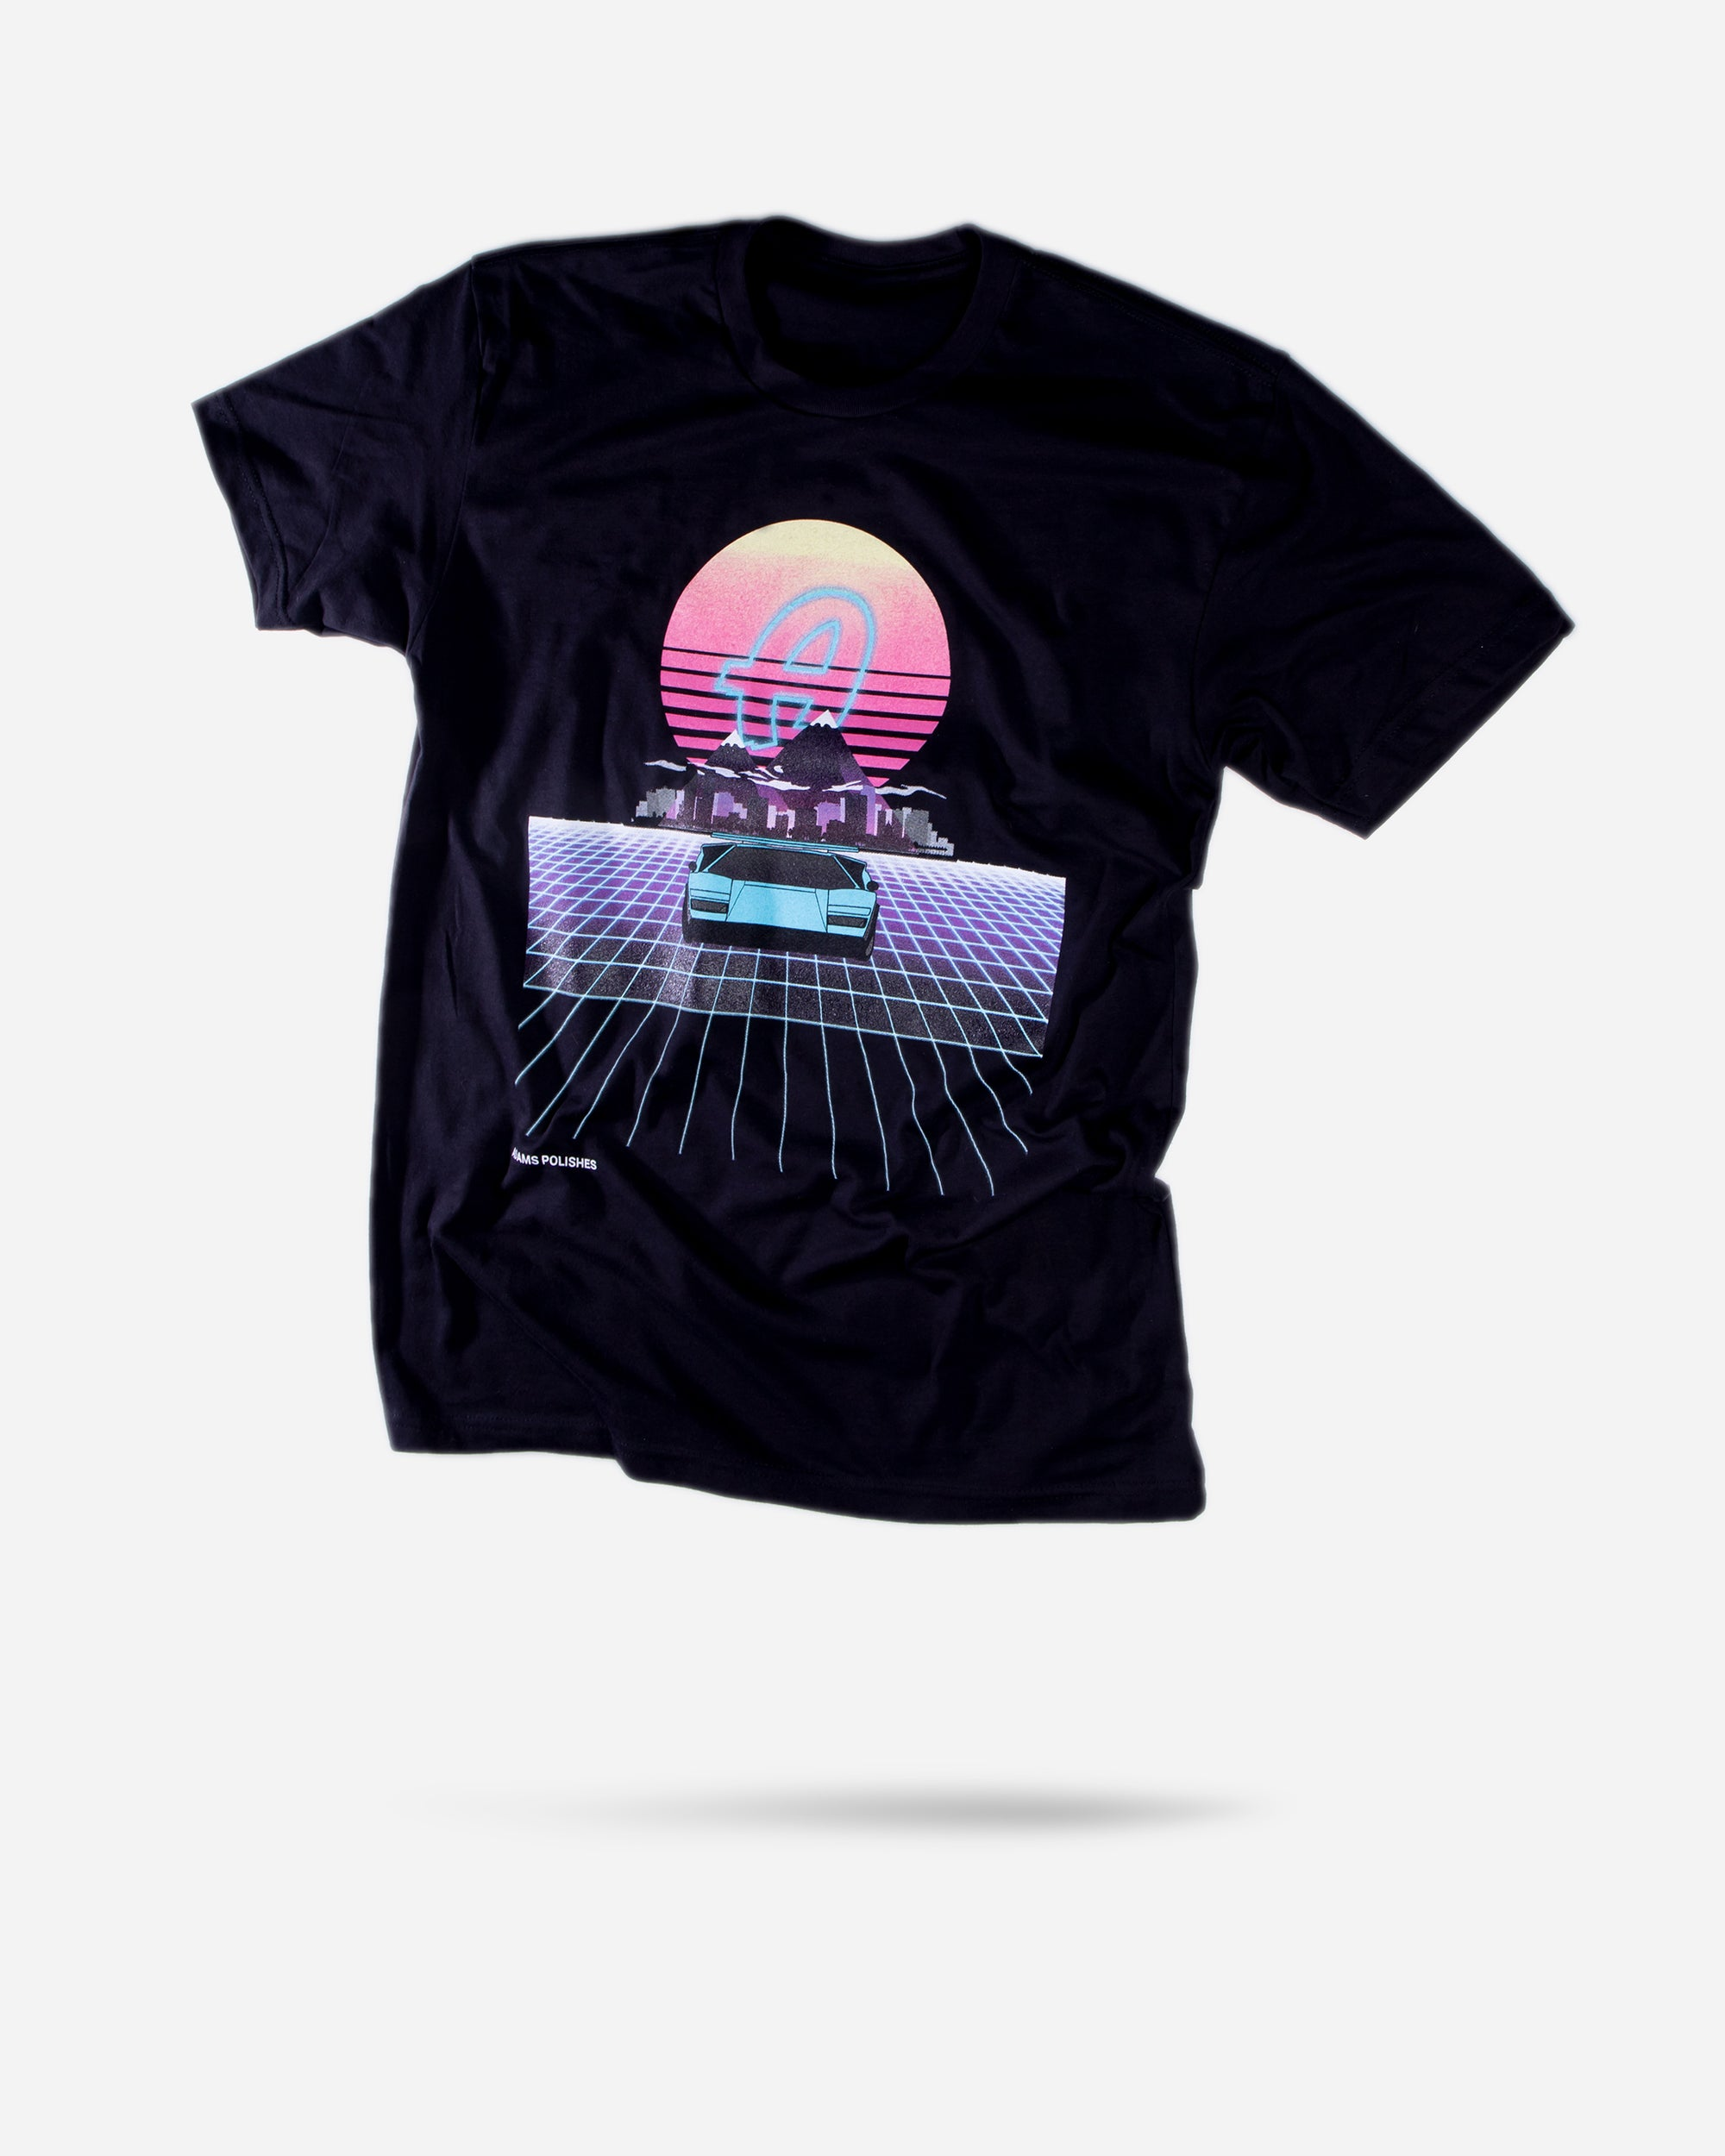 Adam's Electric Sunset Shirt